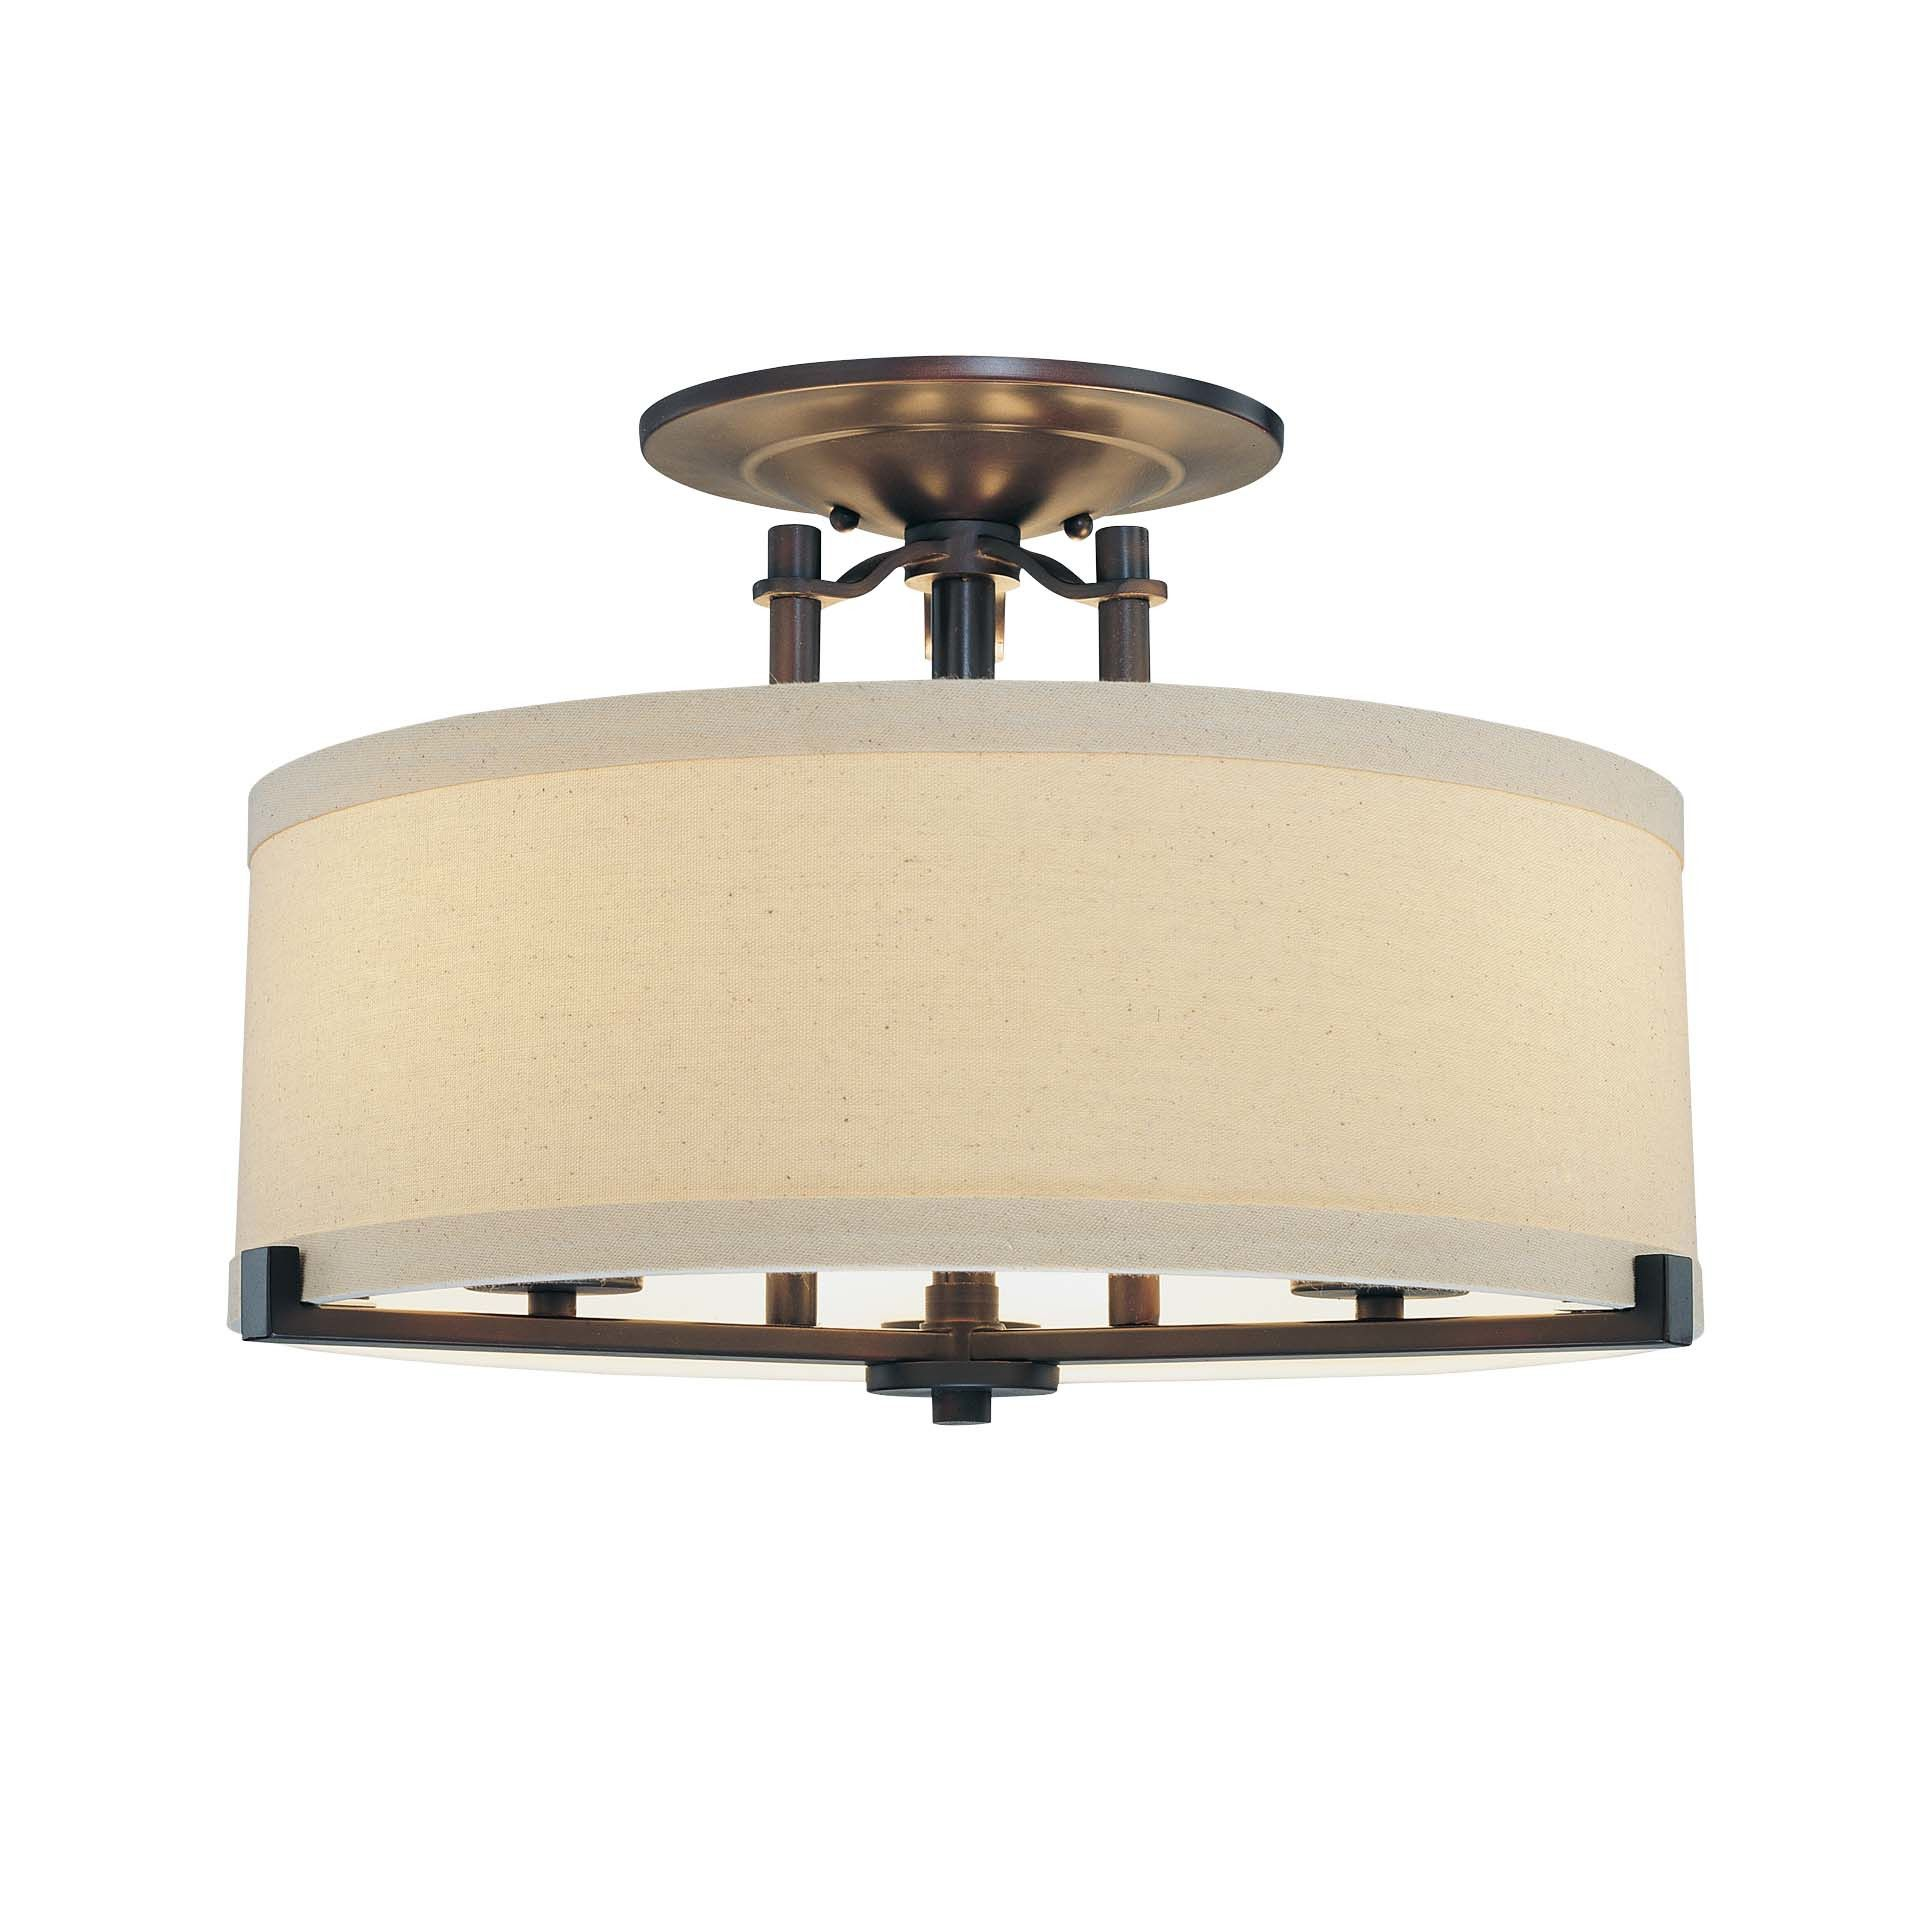 Minka Lavery Ansmith 3 Light Semi Flush Mount